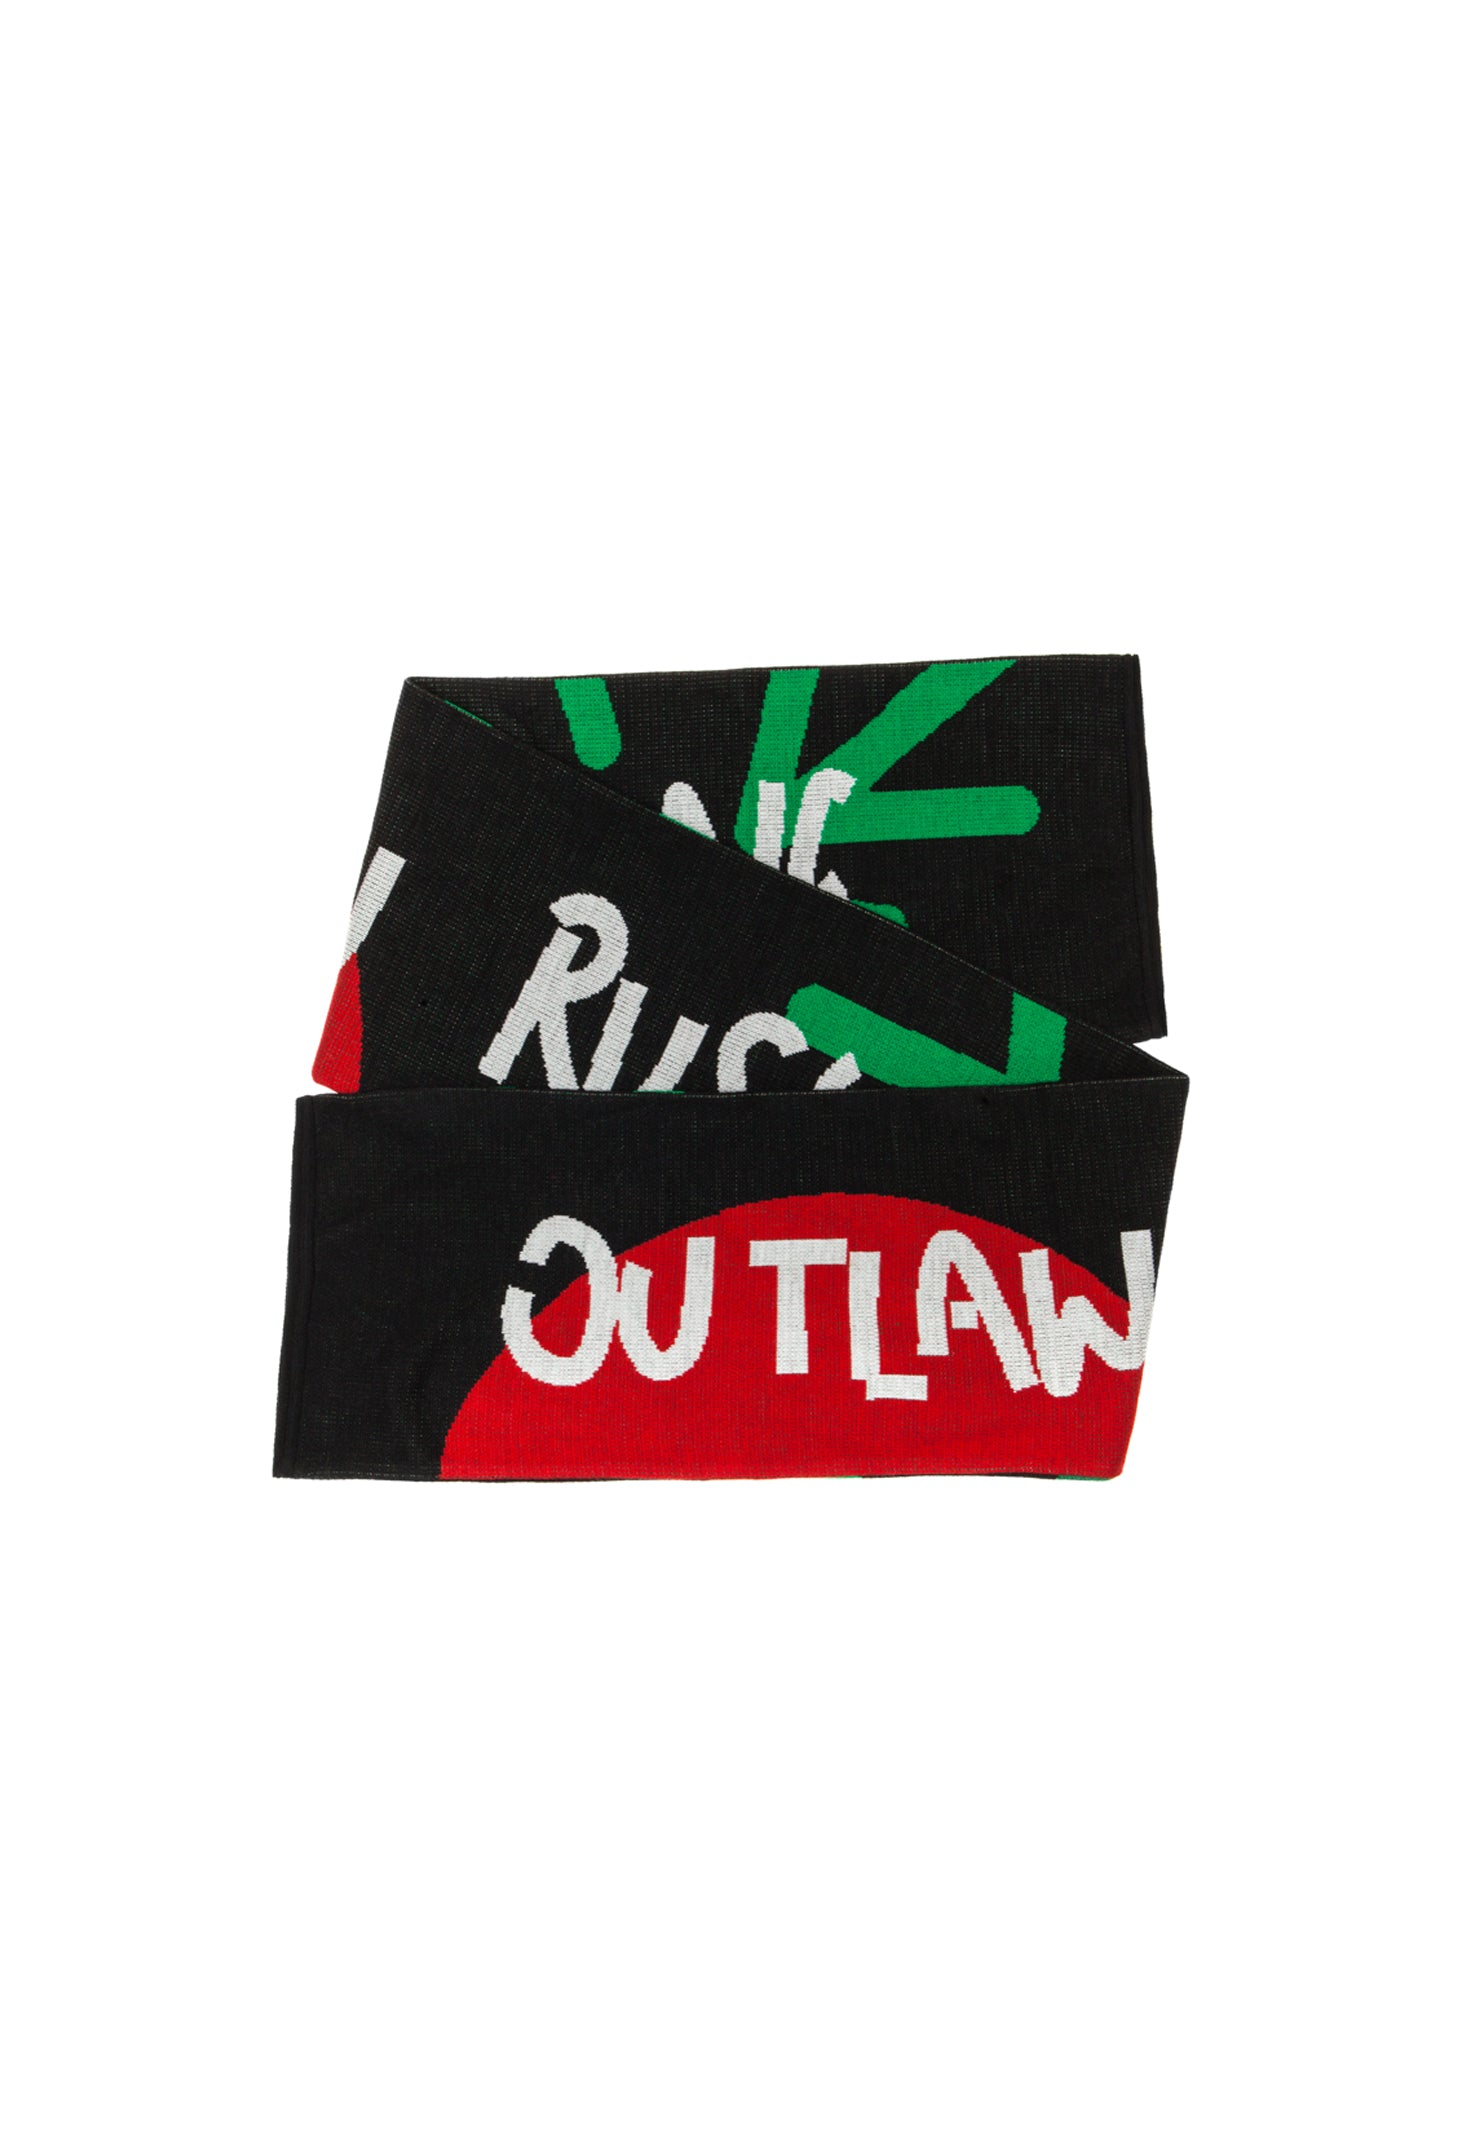 Outlaw Russian Gang Scarf